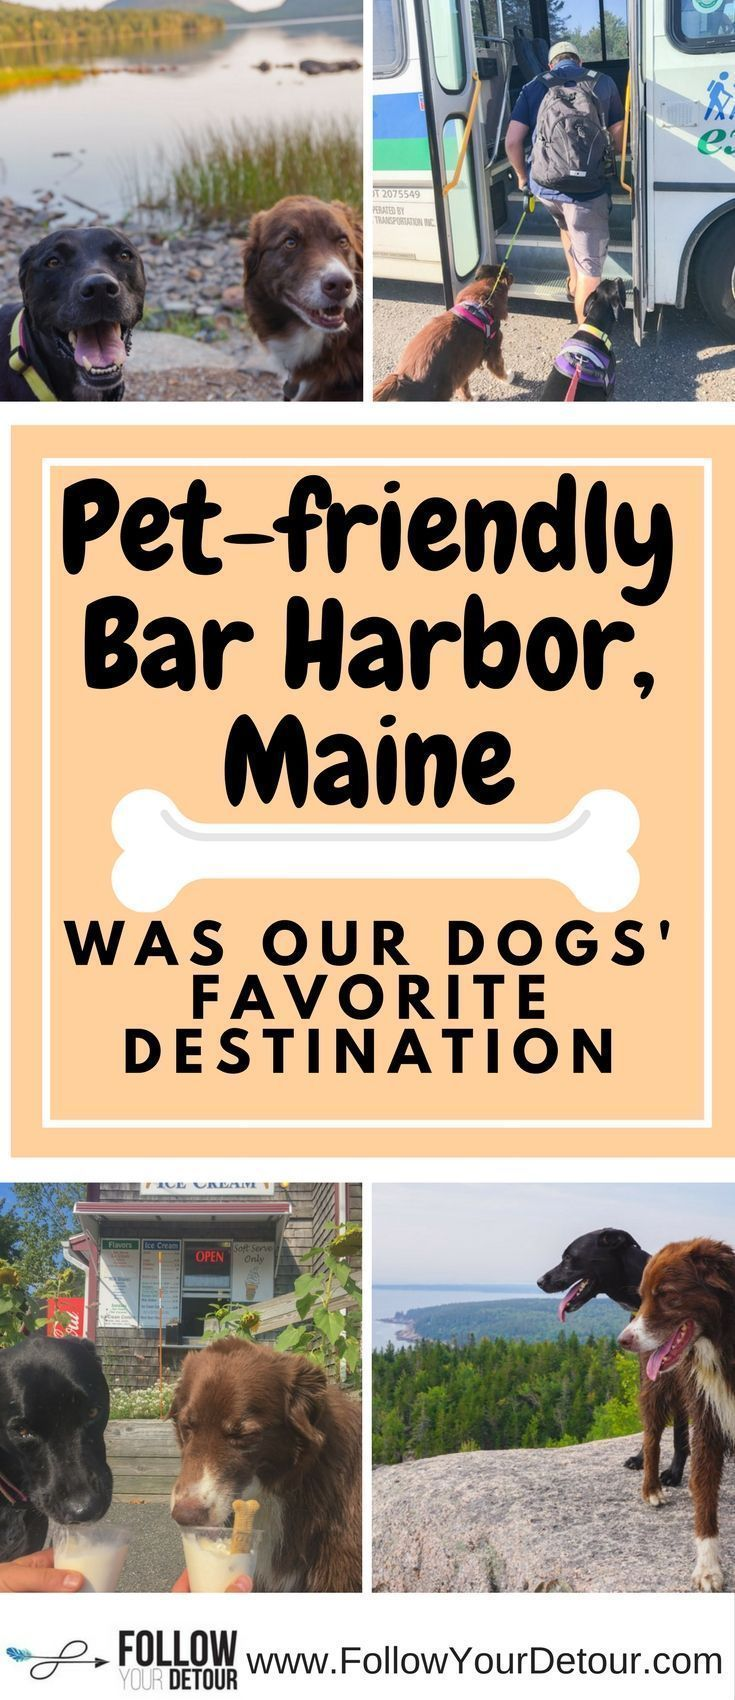 Take your dogs on vacation to bar harbor maine and they will love you forever